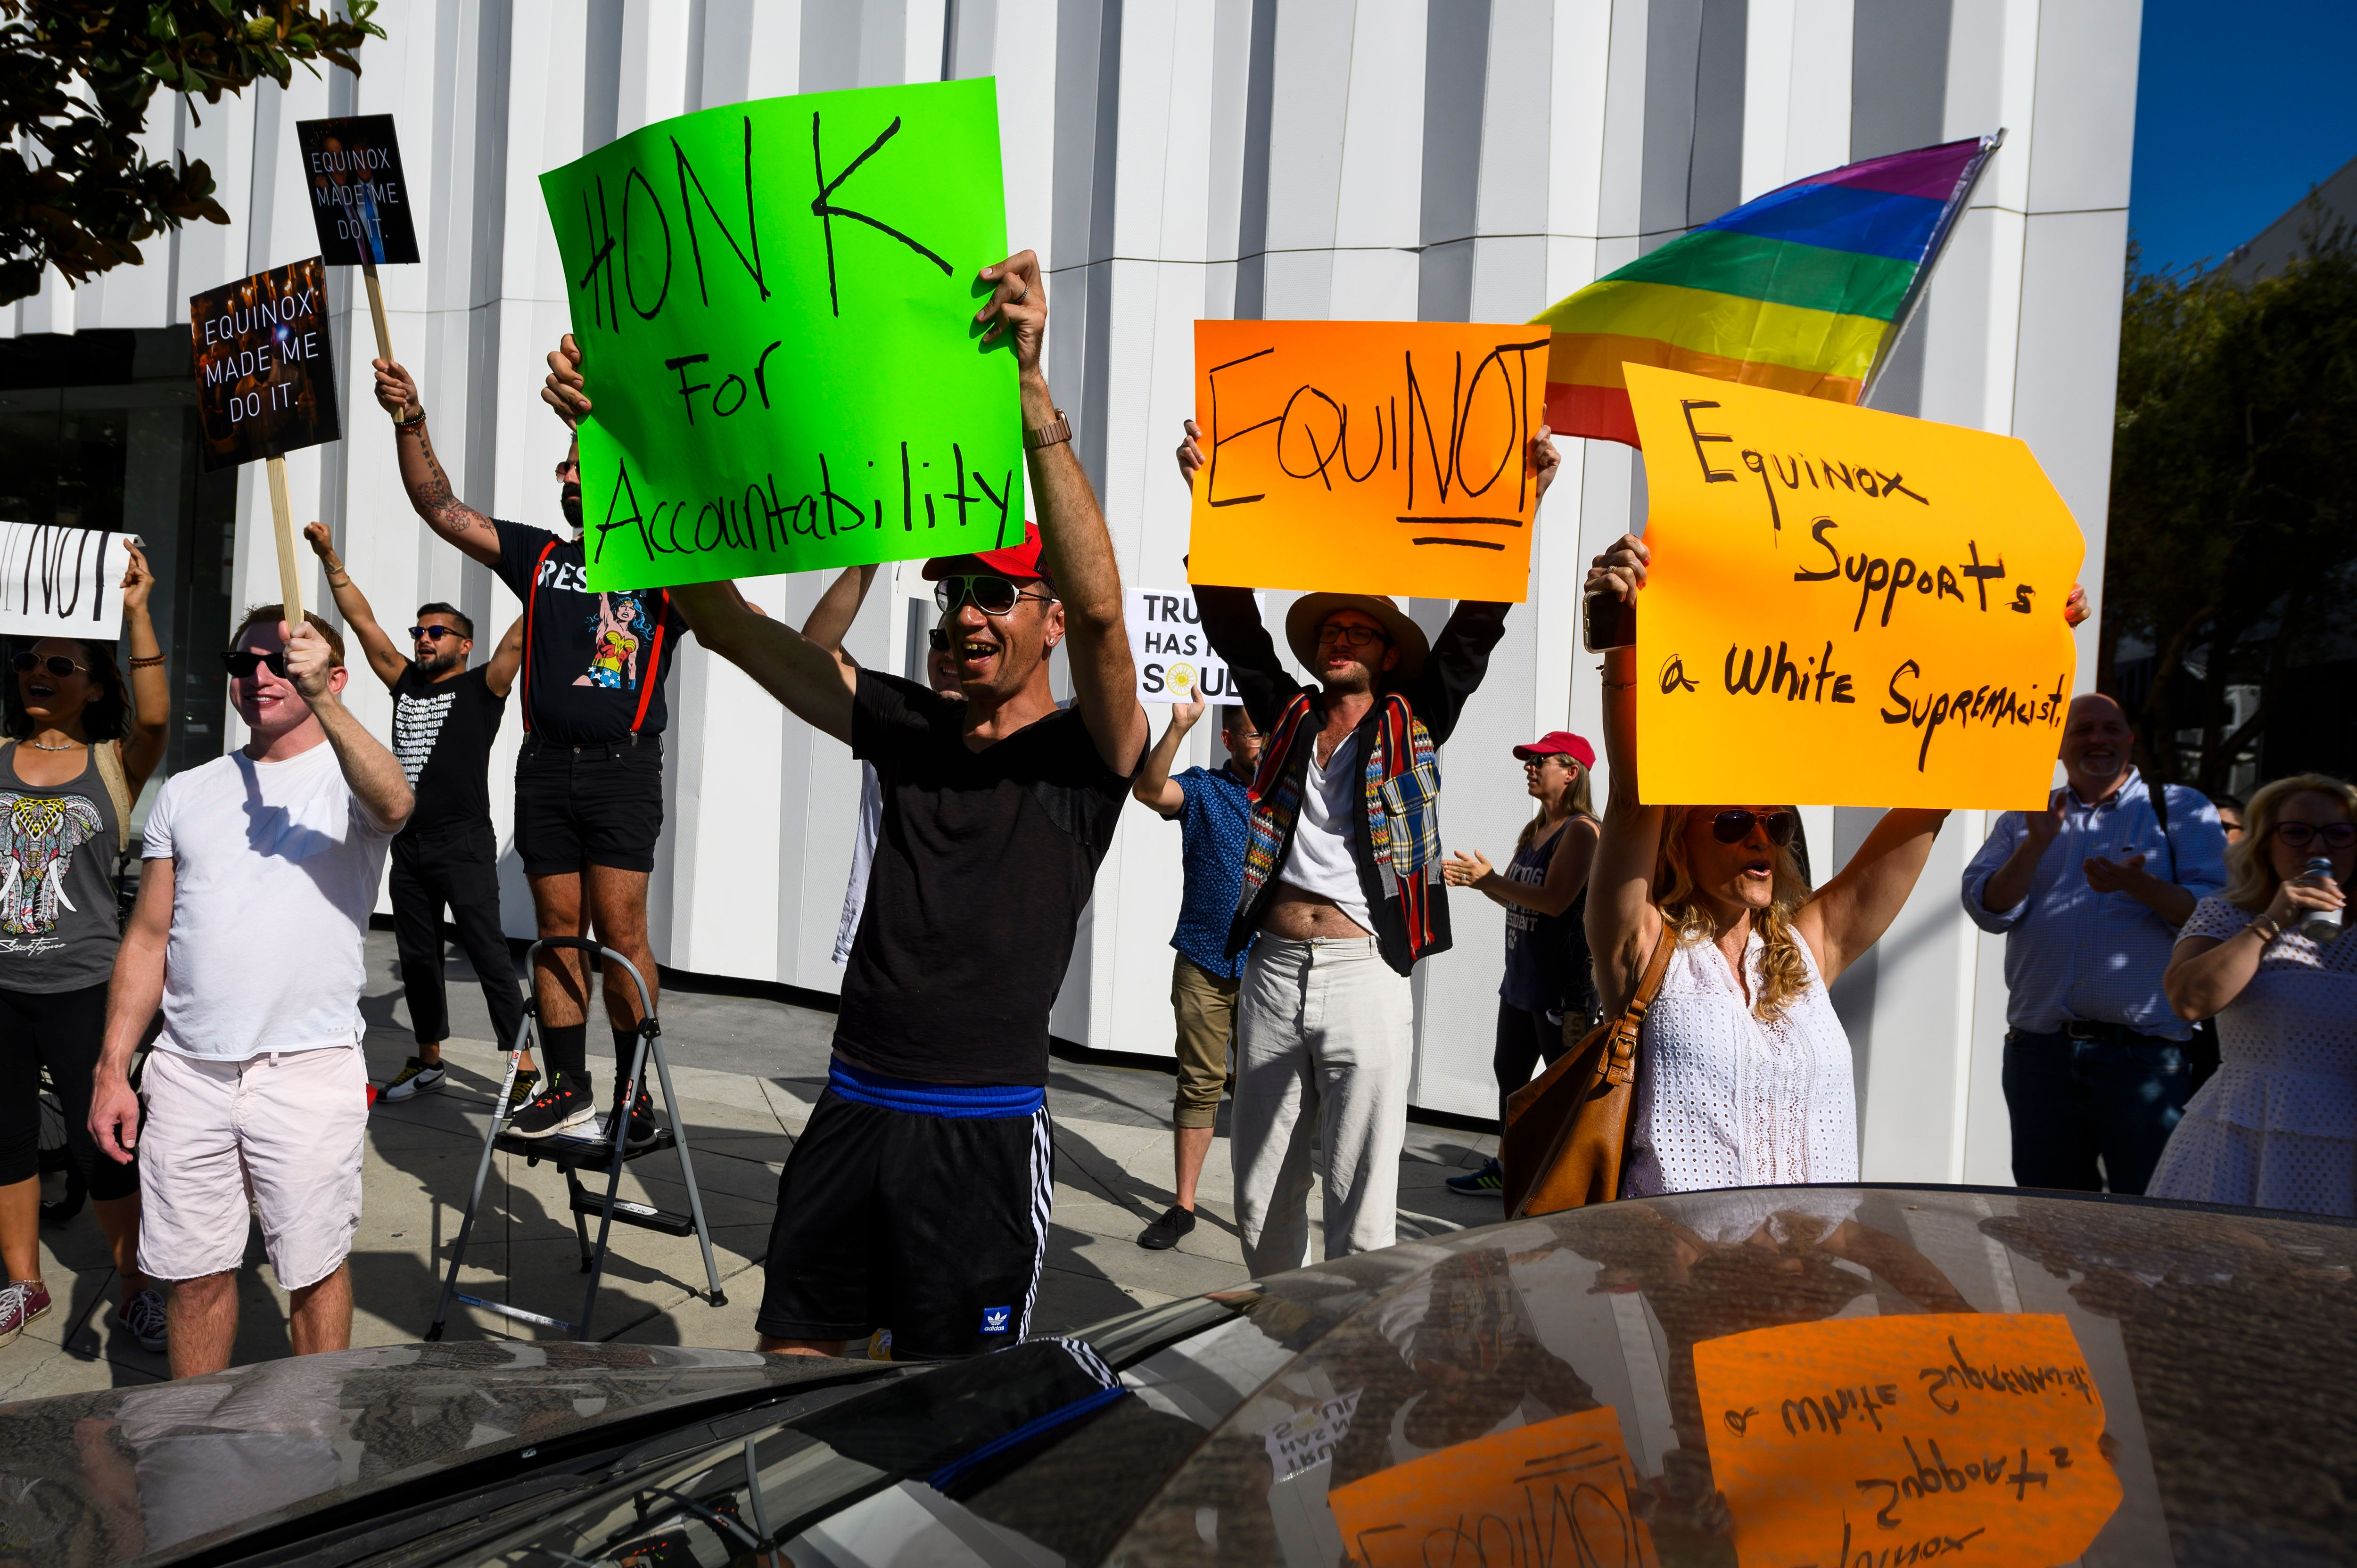 """Protesters hold signs that read, """"Honk for accountability,"""" """"EquiNOT,"""" and, """"Equinox supports a white supremacist."""""""